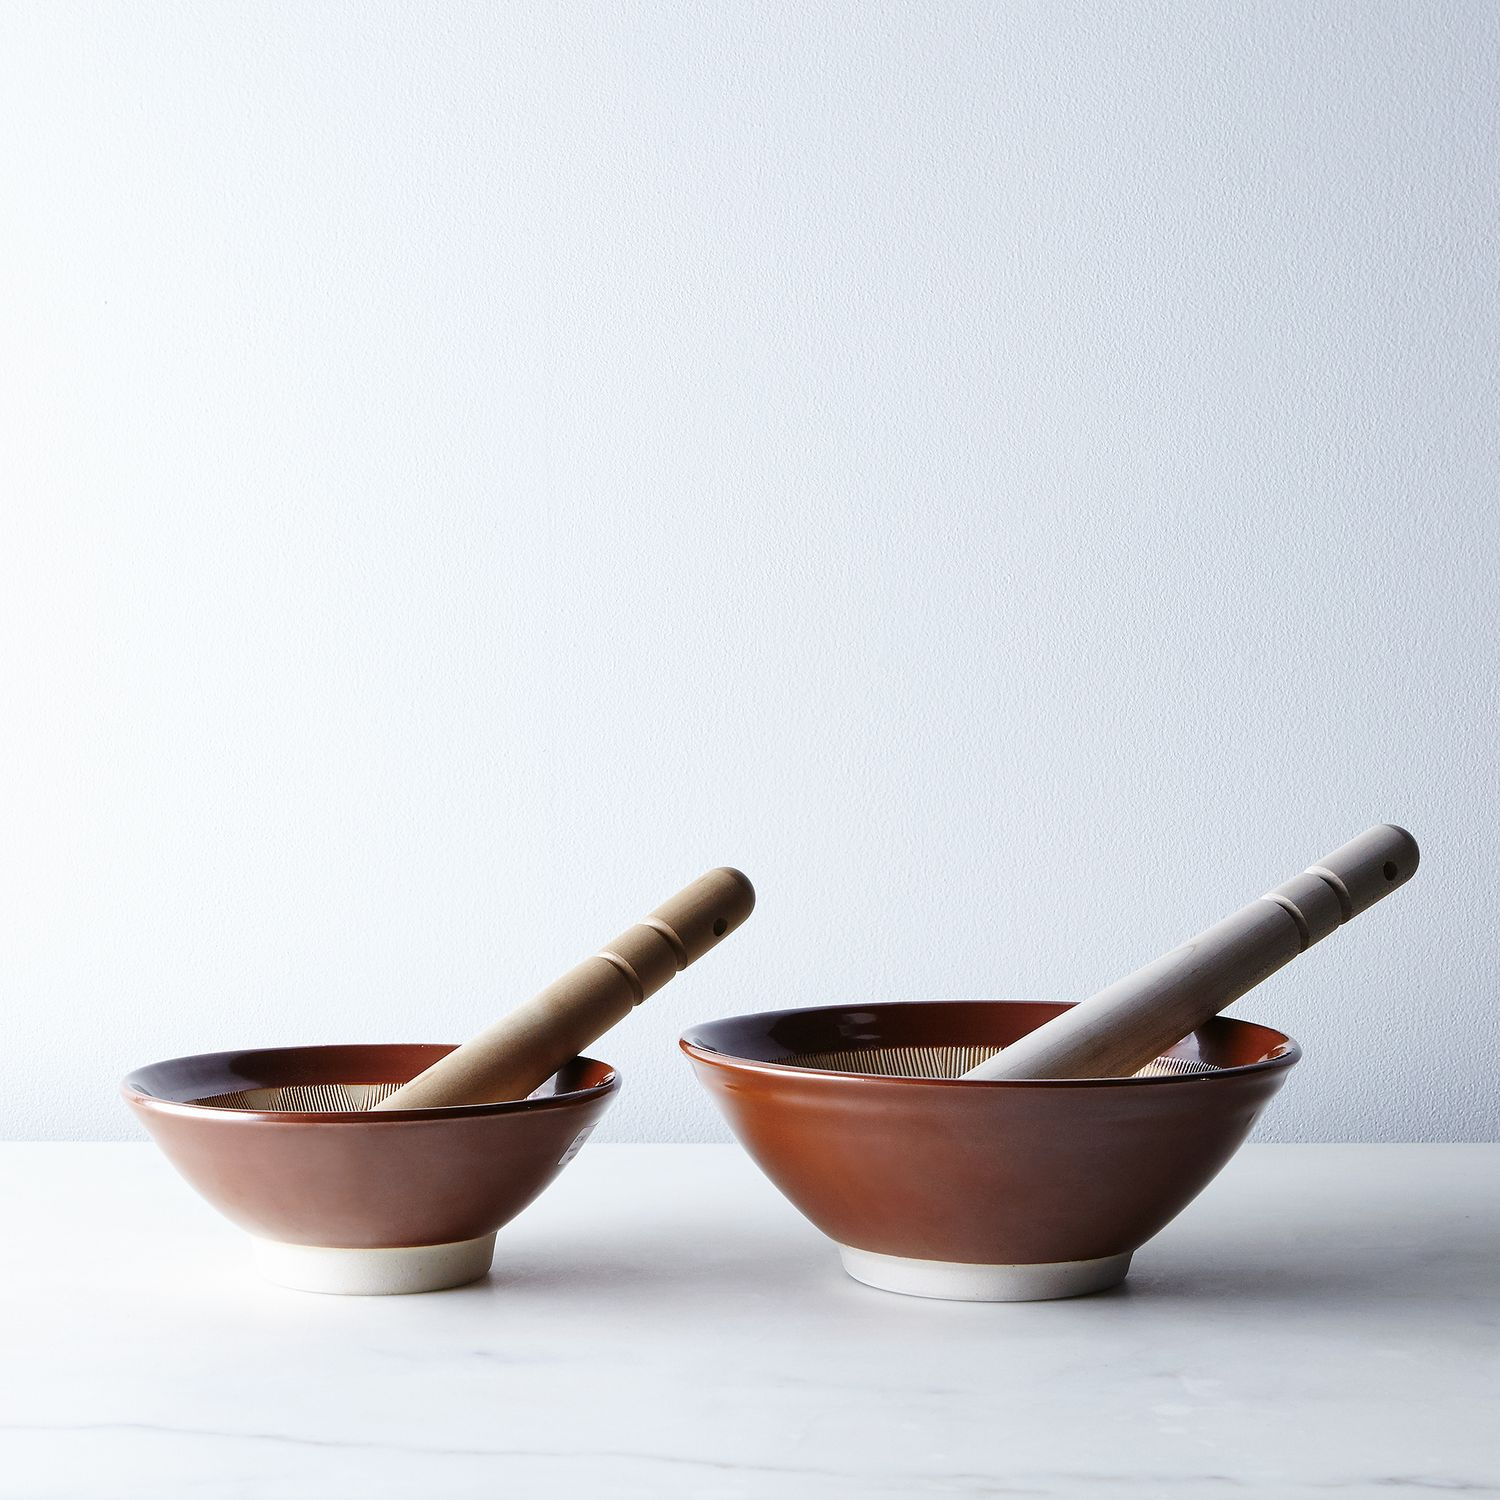 Mortar And Pestle : Japanese mortar and pestle on food